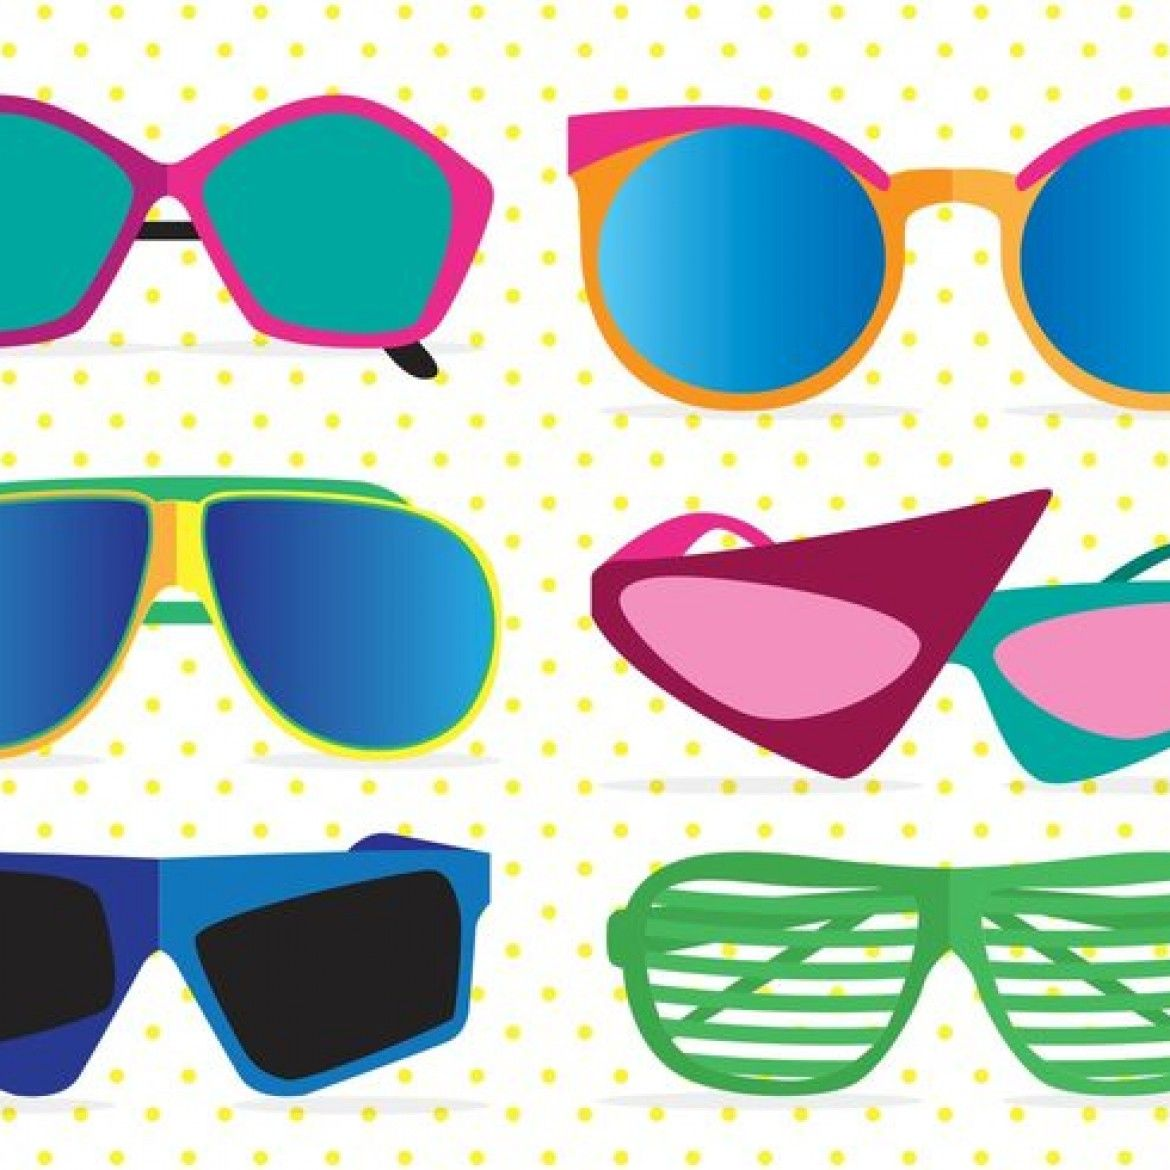 80s heartshutter glasses clipart banner royalty free download Pin by Brian Shea on 80\'s Design | Vector free, Sunglasses, Cute ... banner royalty free download